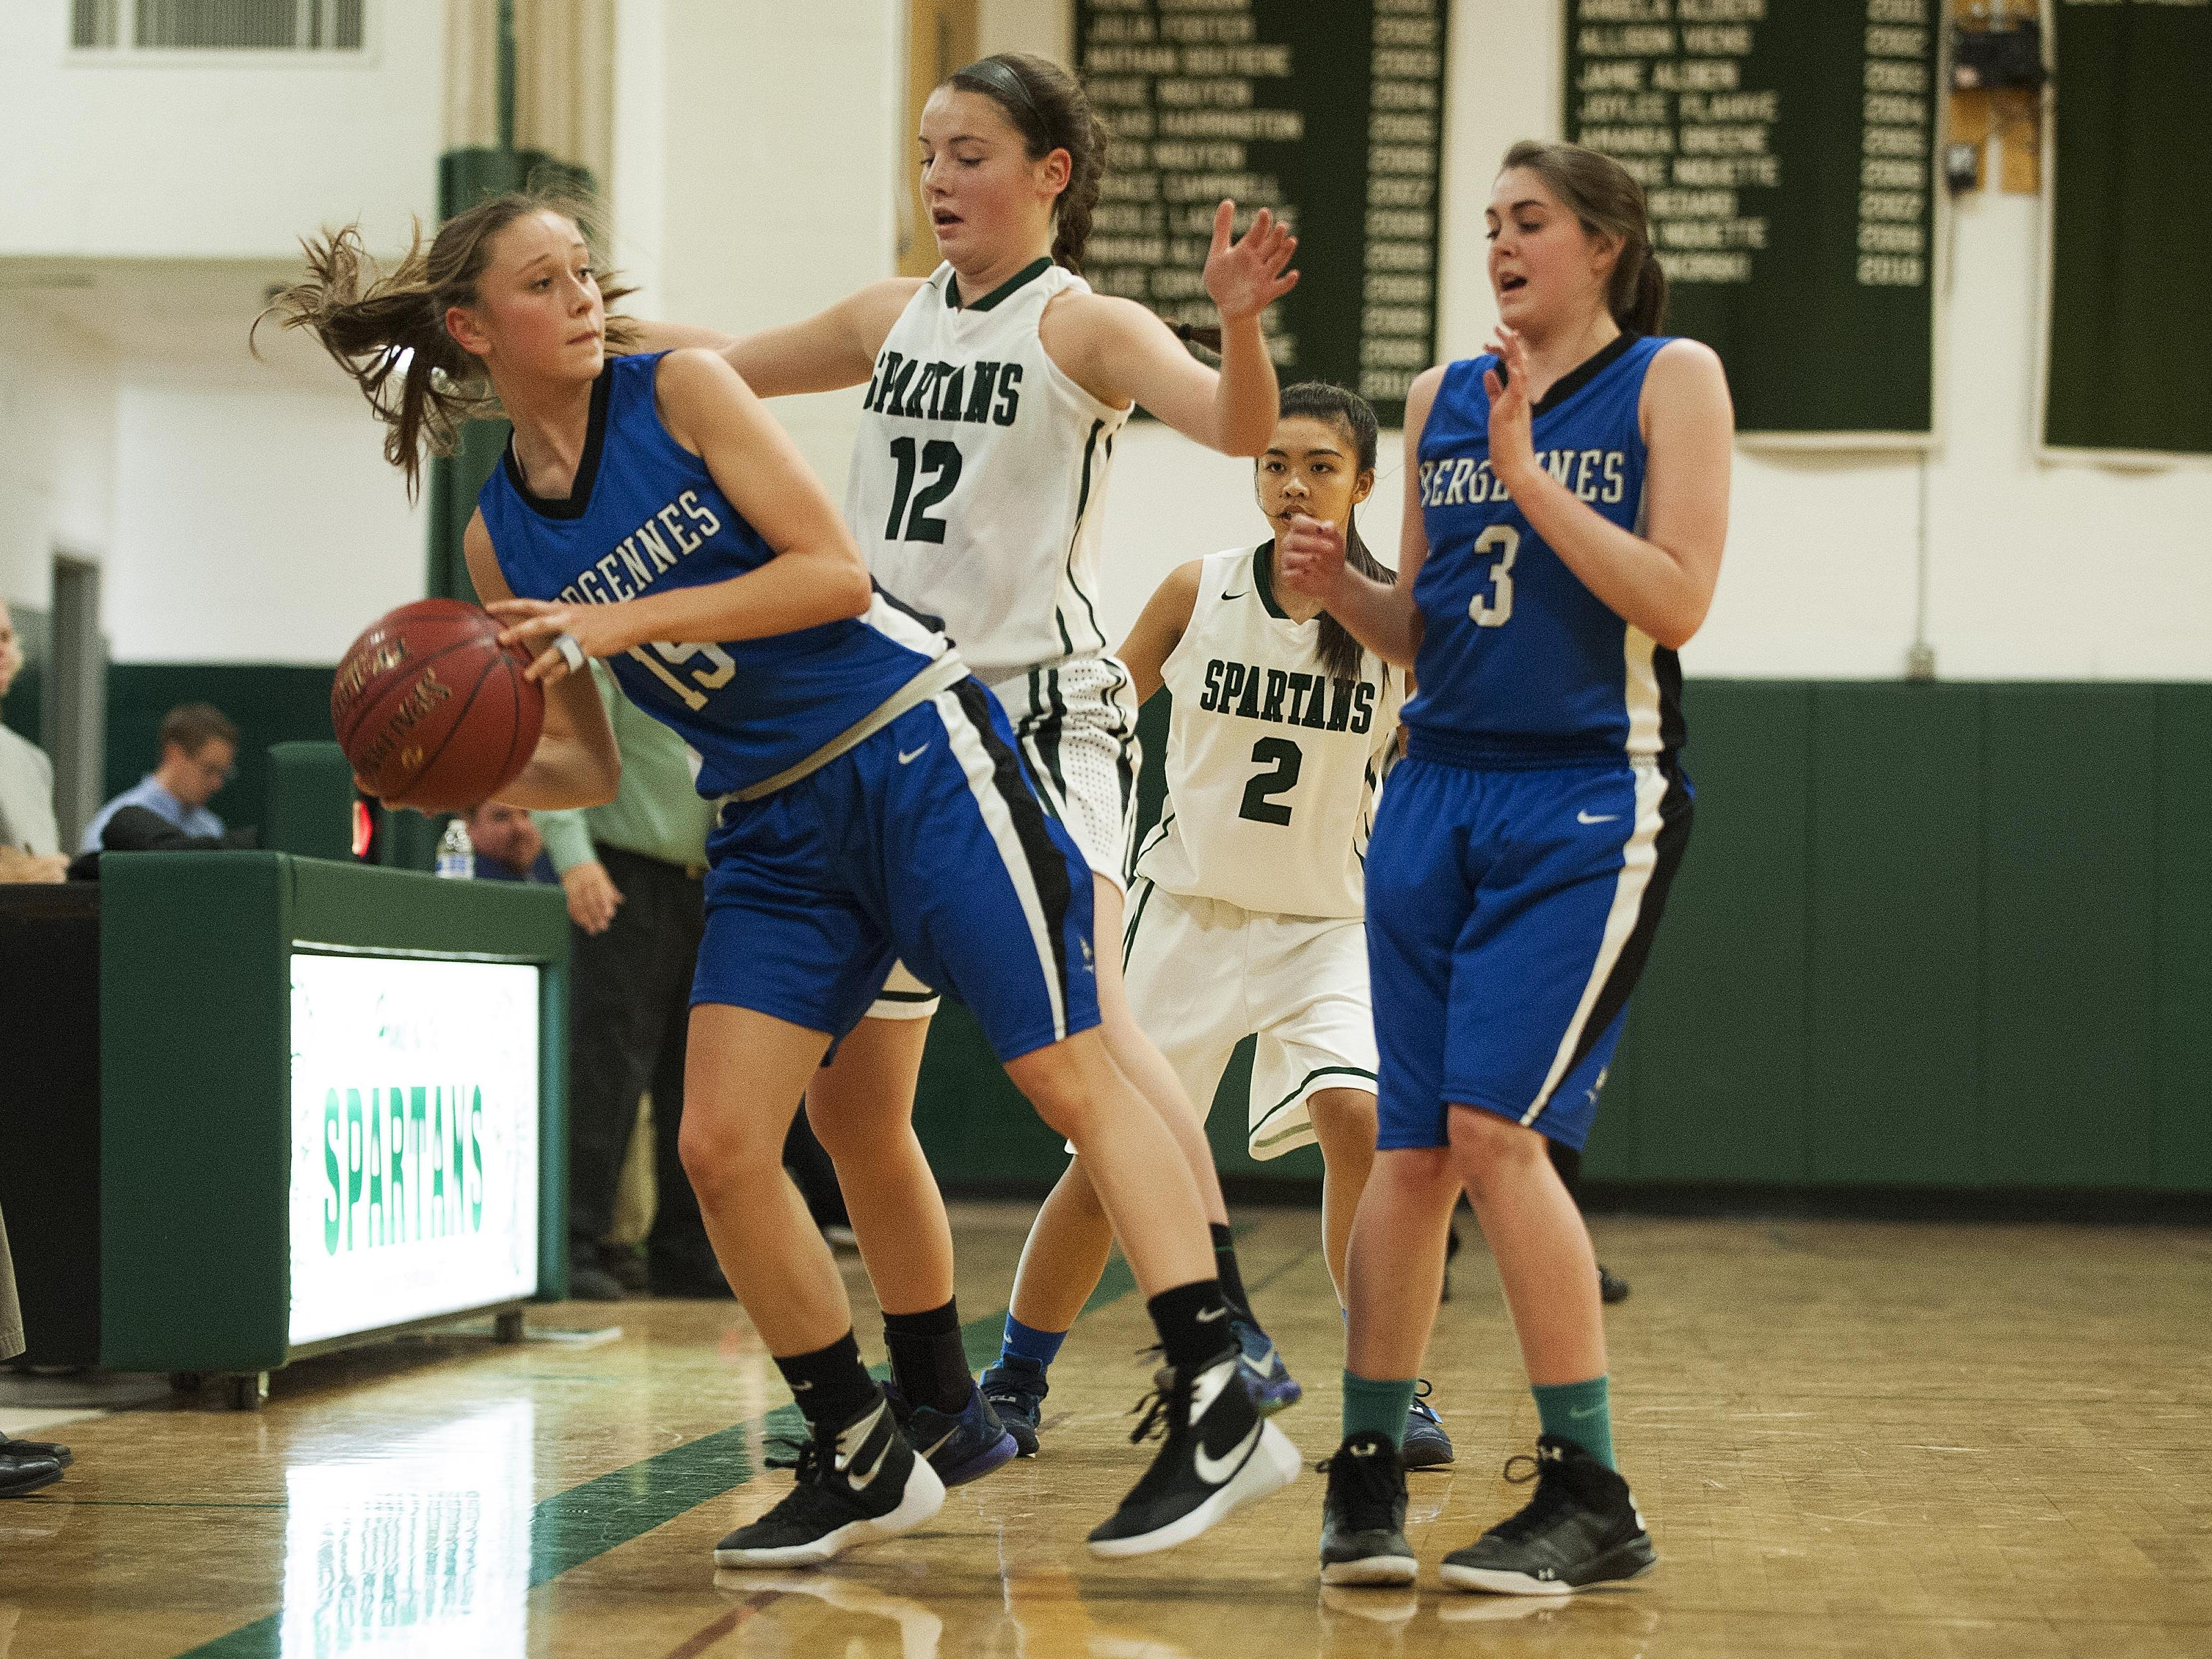 Vergennes' Caroline Johnston, left, tries to save the ball from going out of bounds while being guarded by Winooski's Lydia Nattress (12) during the girls basketball game at Winooski High School on Wednesday night